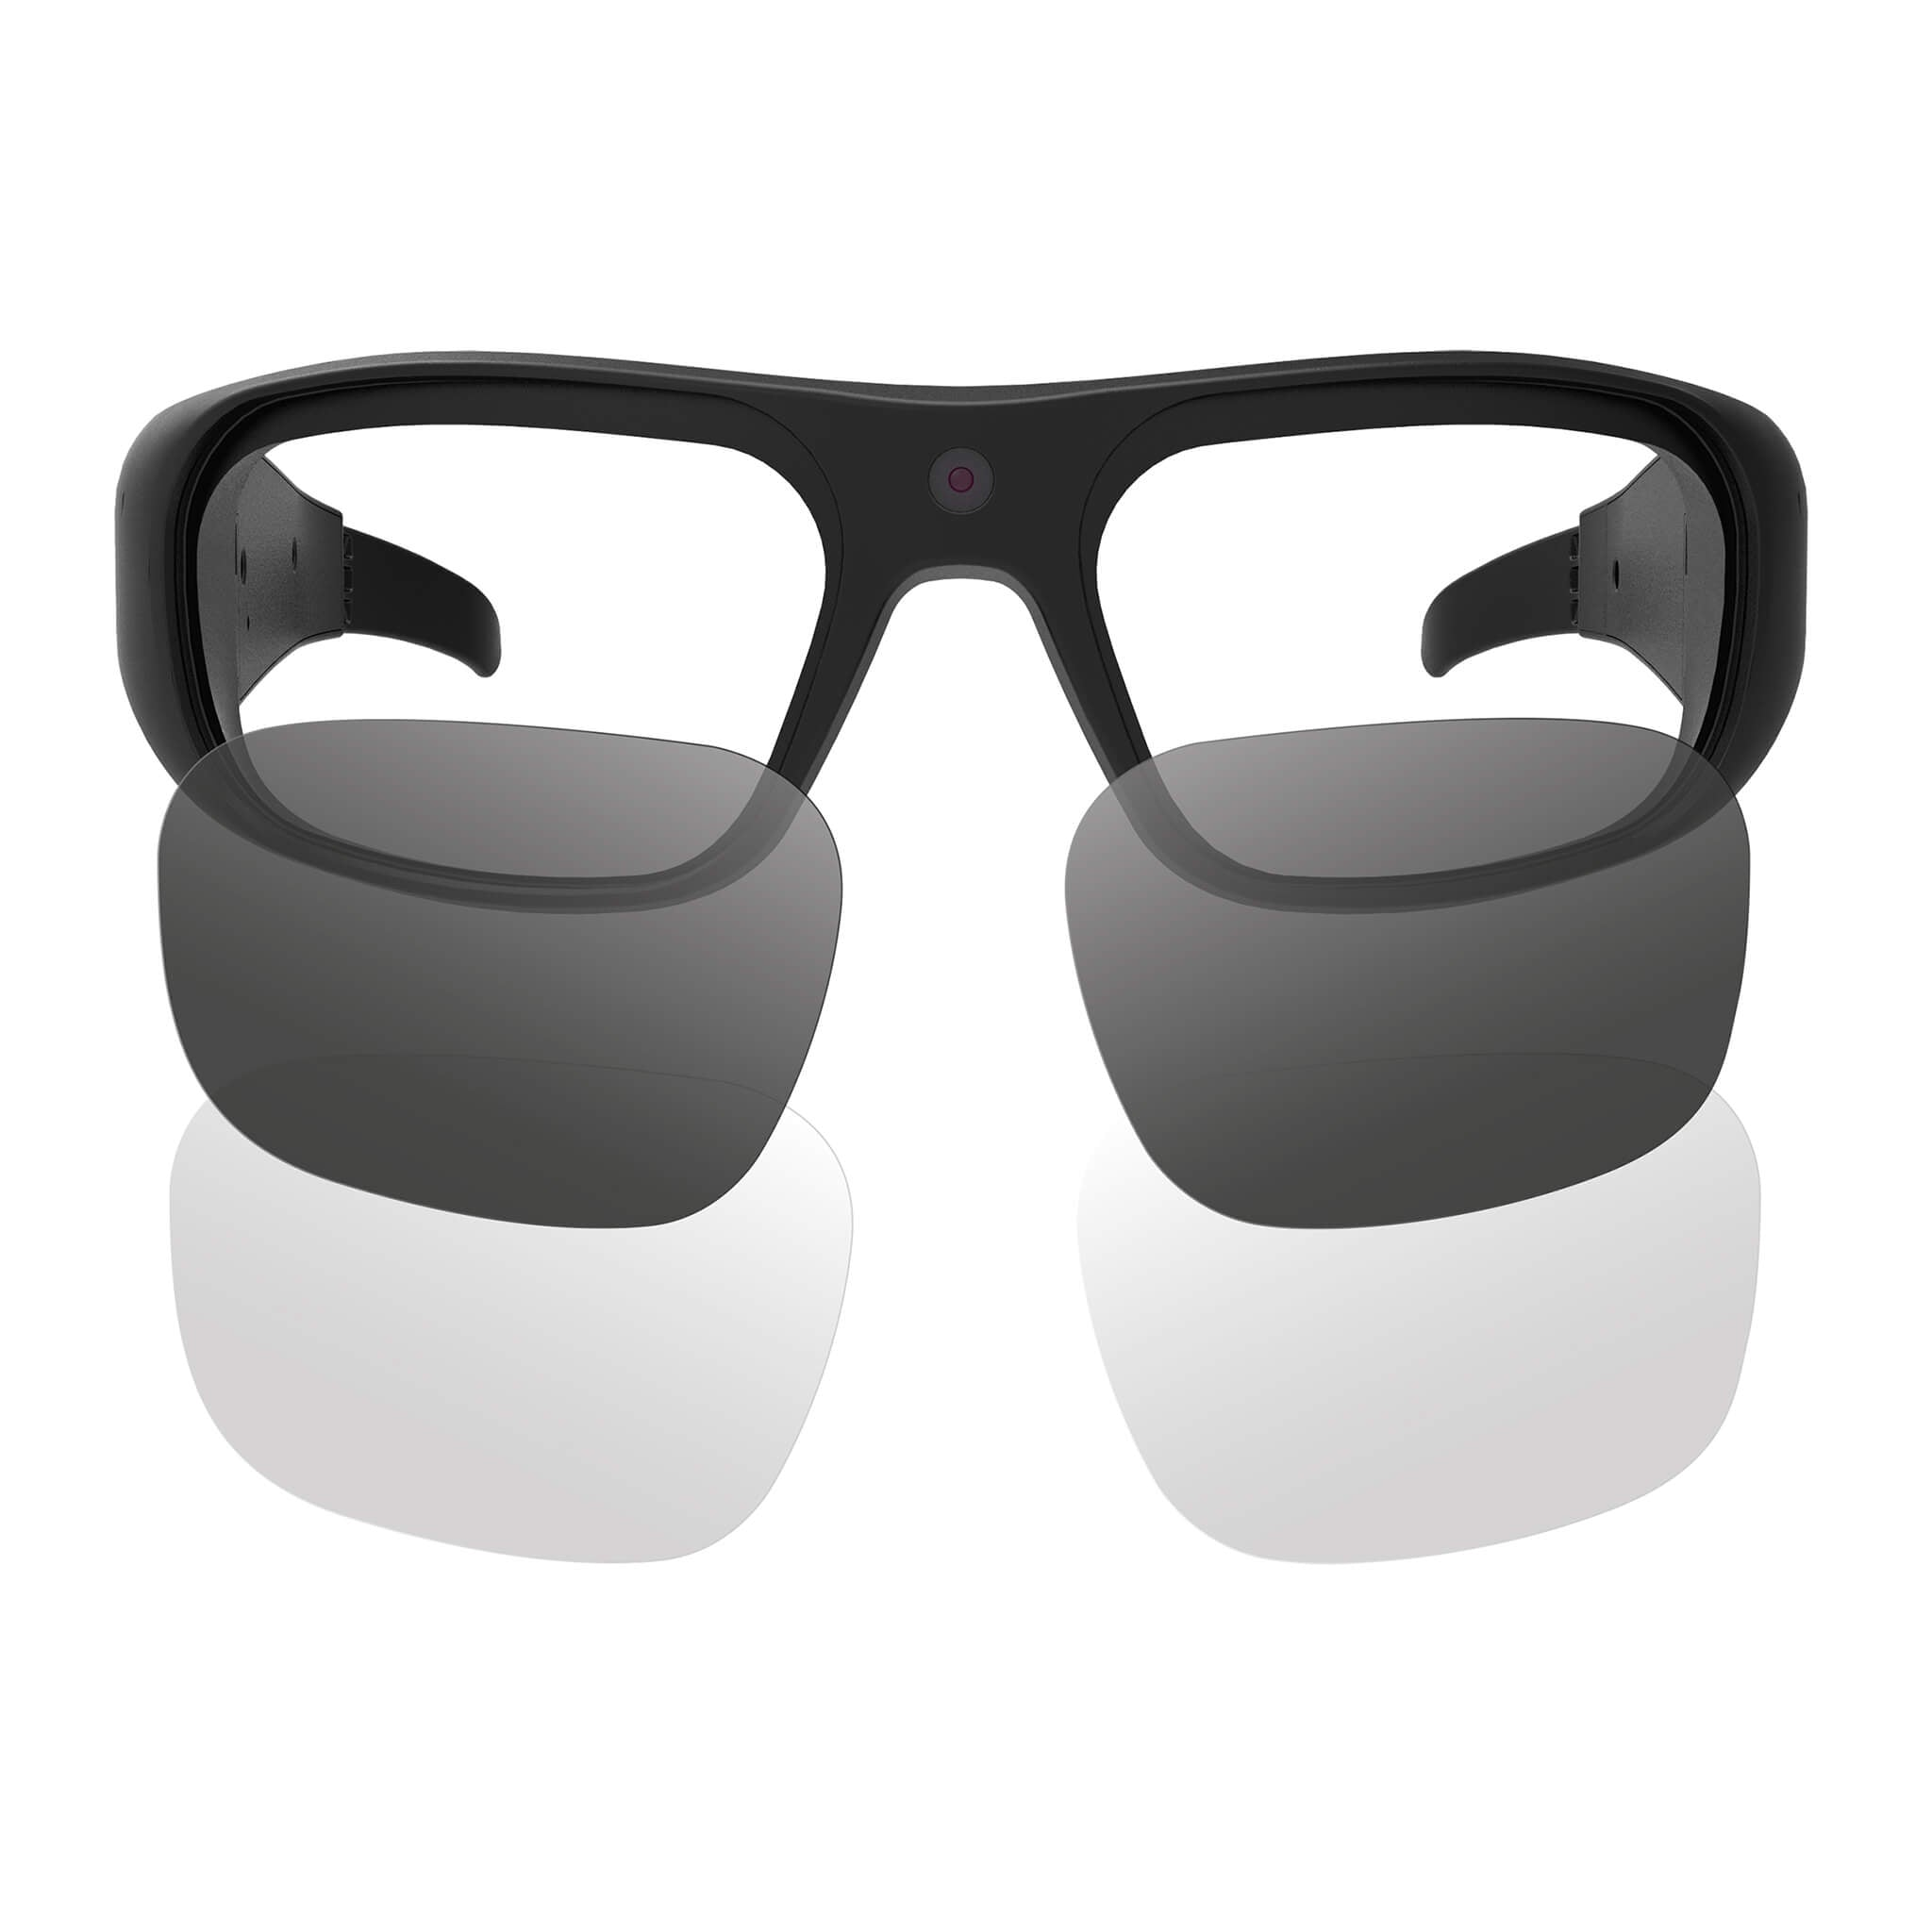 Bear Grylls Waterproof Video Eyewear with clear and polarised lenses